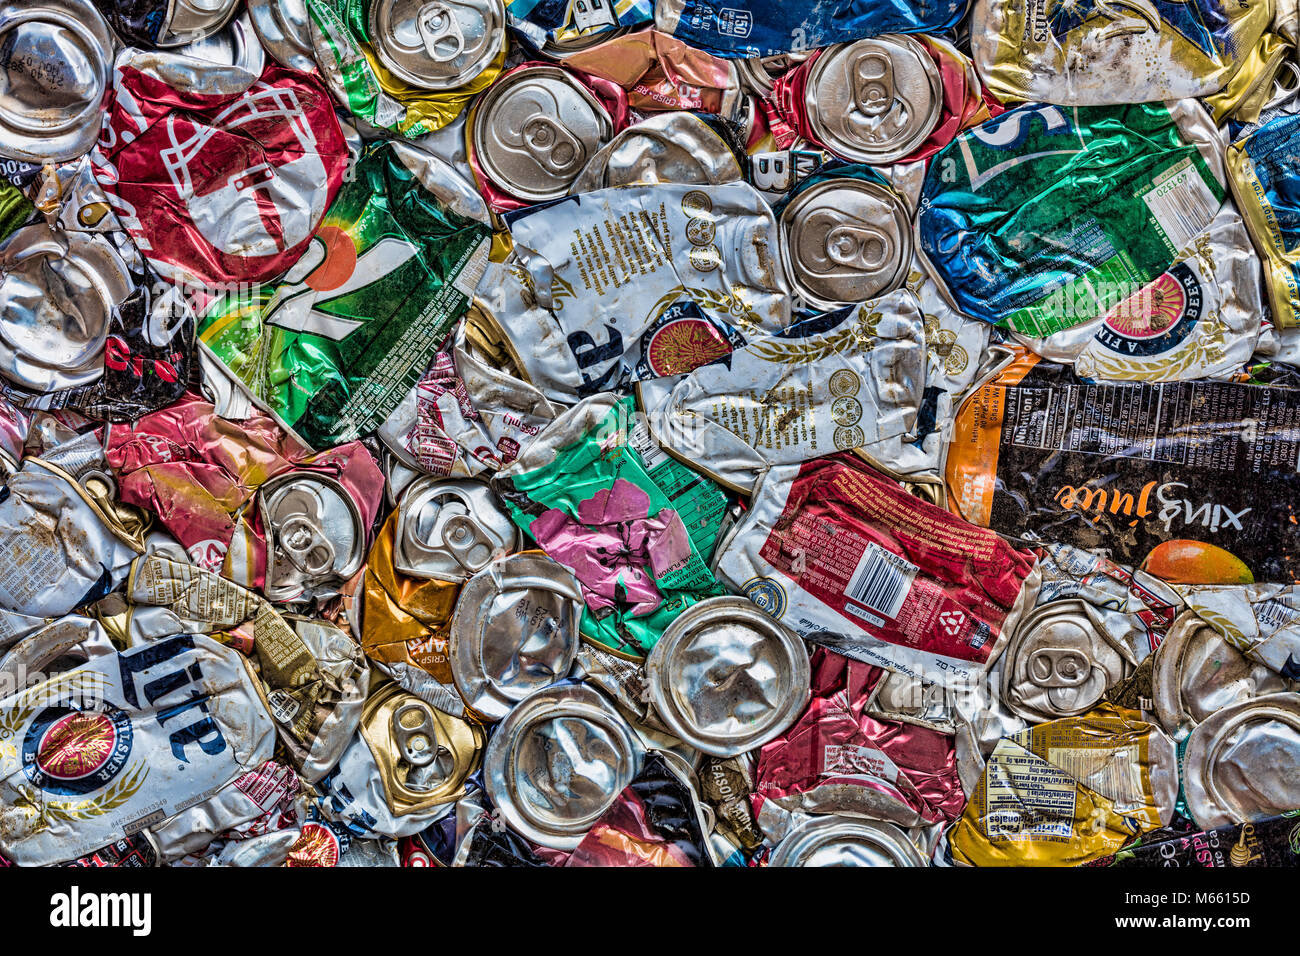 Scrap aluminum cans prepared for Recycle, Alaska, Chena Hot Springs. Photographed at 50.6 megapixels - Stock Image